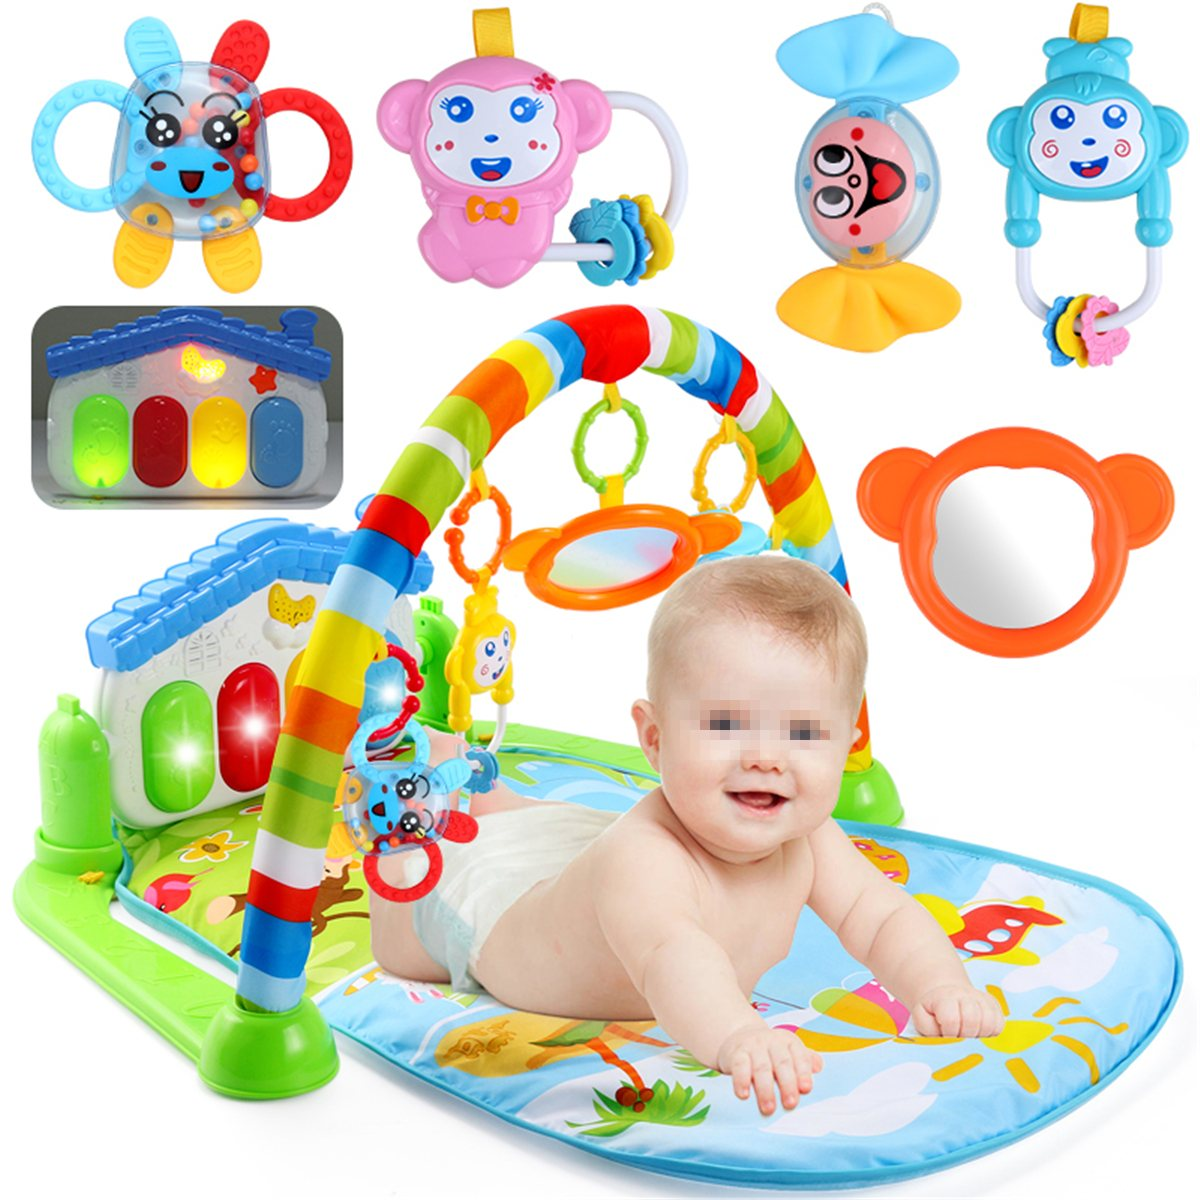 New 3 in 1 Newborn Baby Multifunction Play Mat Music Piano Fitness Gym Play Activity Mats For Kids Children Gift Toys